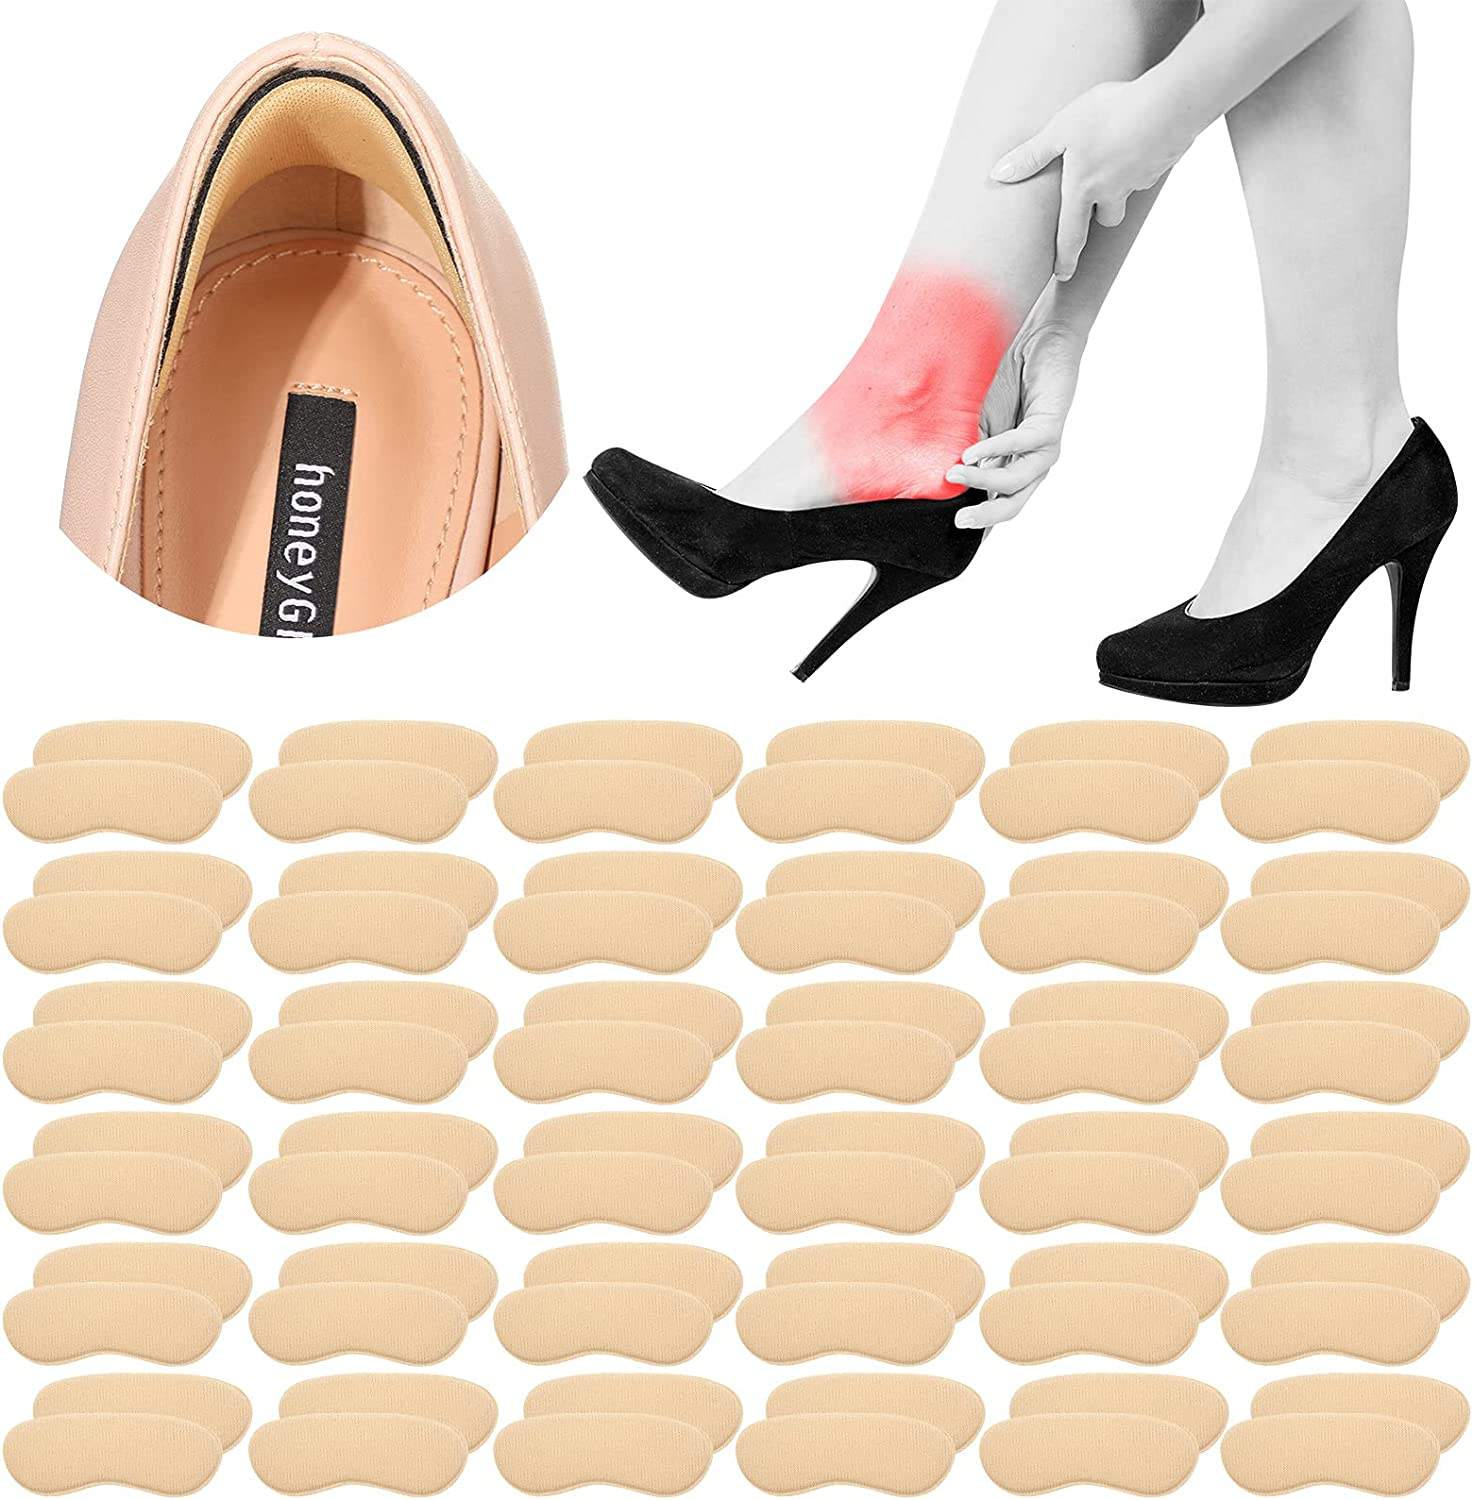 36 Pairs Heel NEW before selling ☆ Grips Liner Cushions Self-Adhesive Ranking TOP15 Non-Slip F